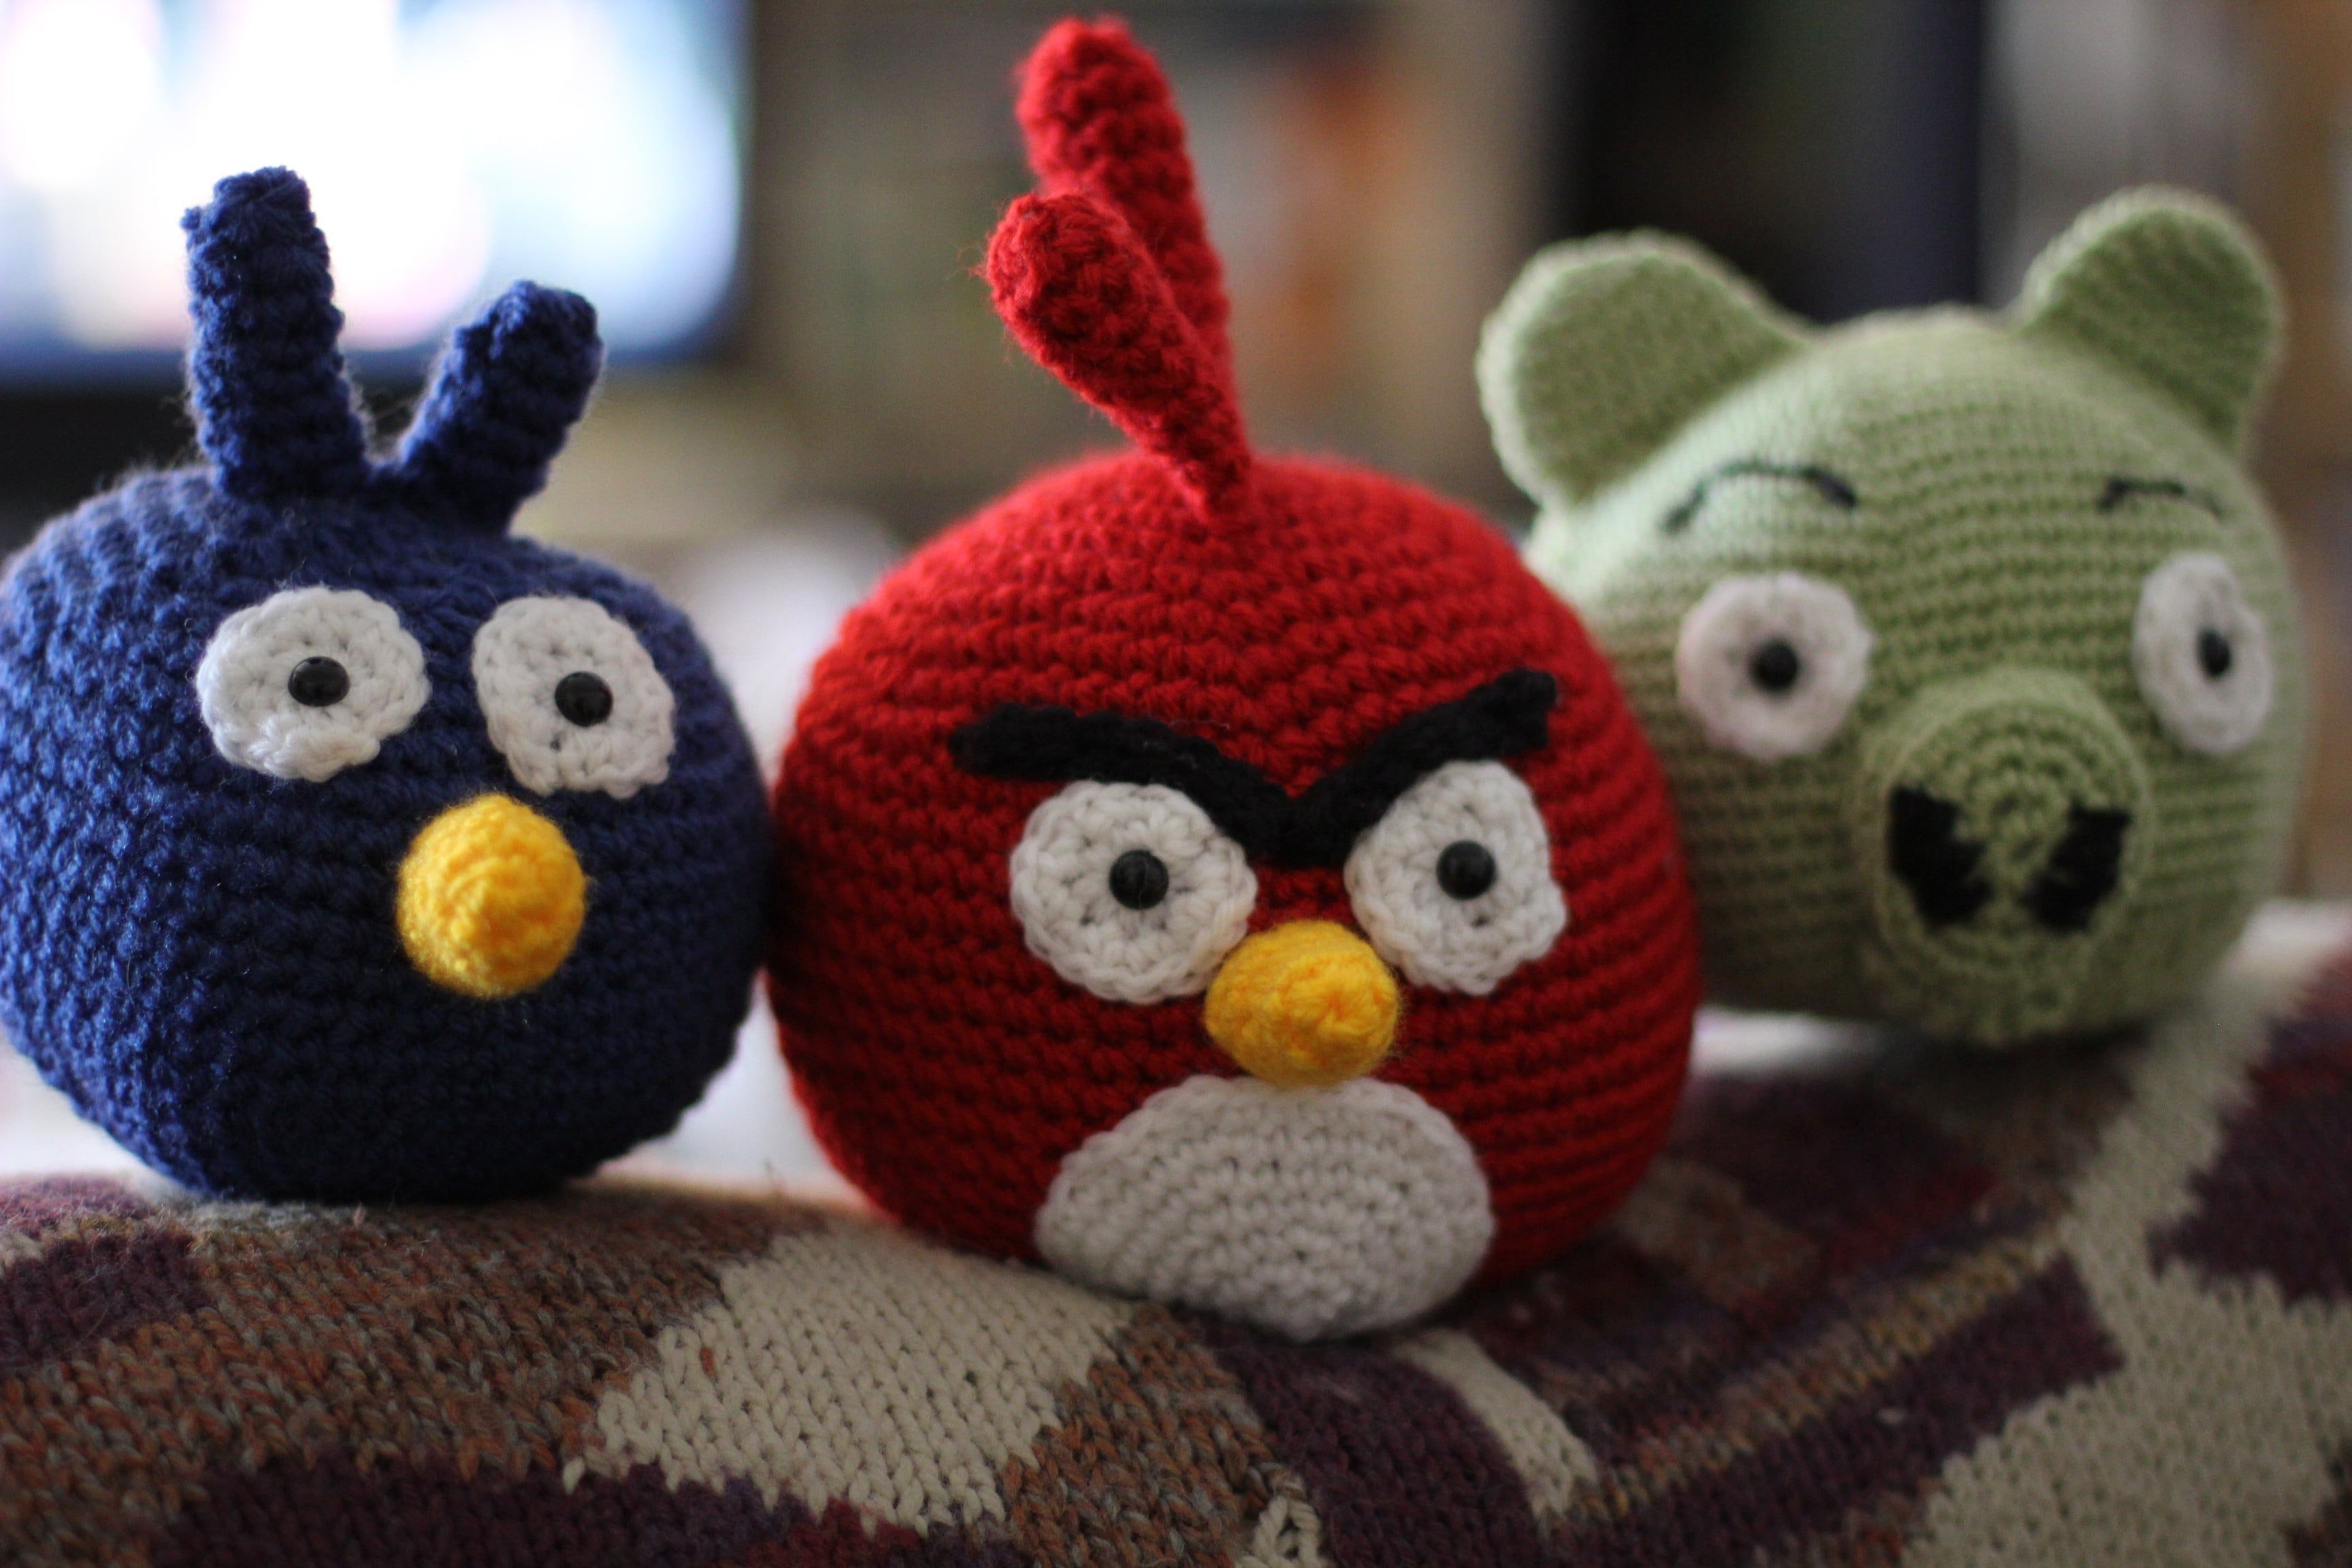 Knitted Childrens Slippers Free Pattern : Patron Angry Birds en crochet - Imagui